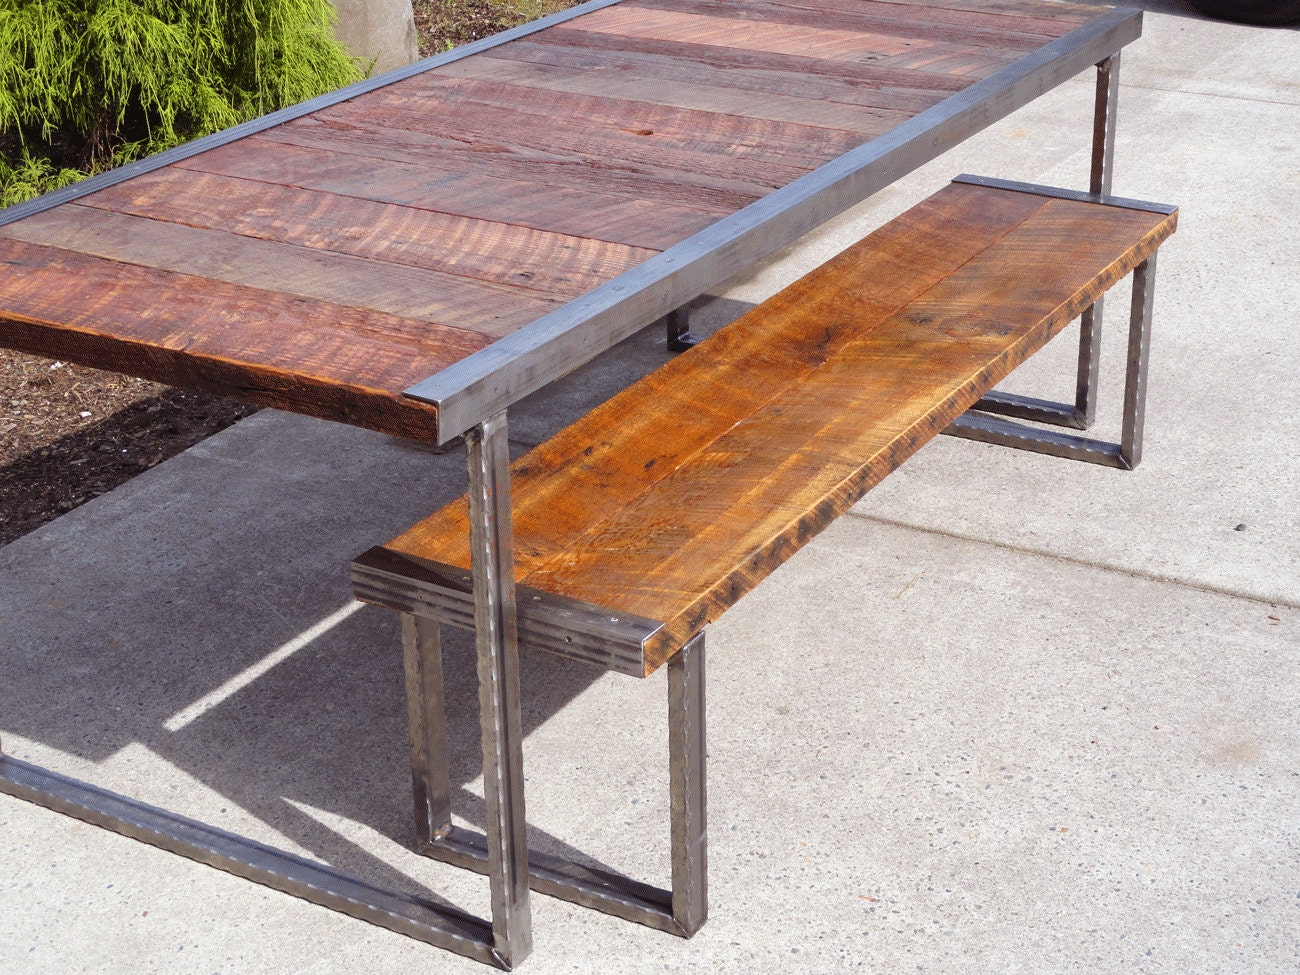 Superb img of ft Industrial Dining Table with Rectangular by MtHoodWoodWorks with #9C5D2F color and 1300x975 pixels